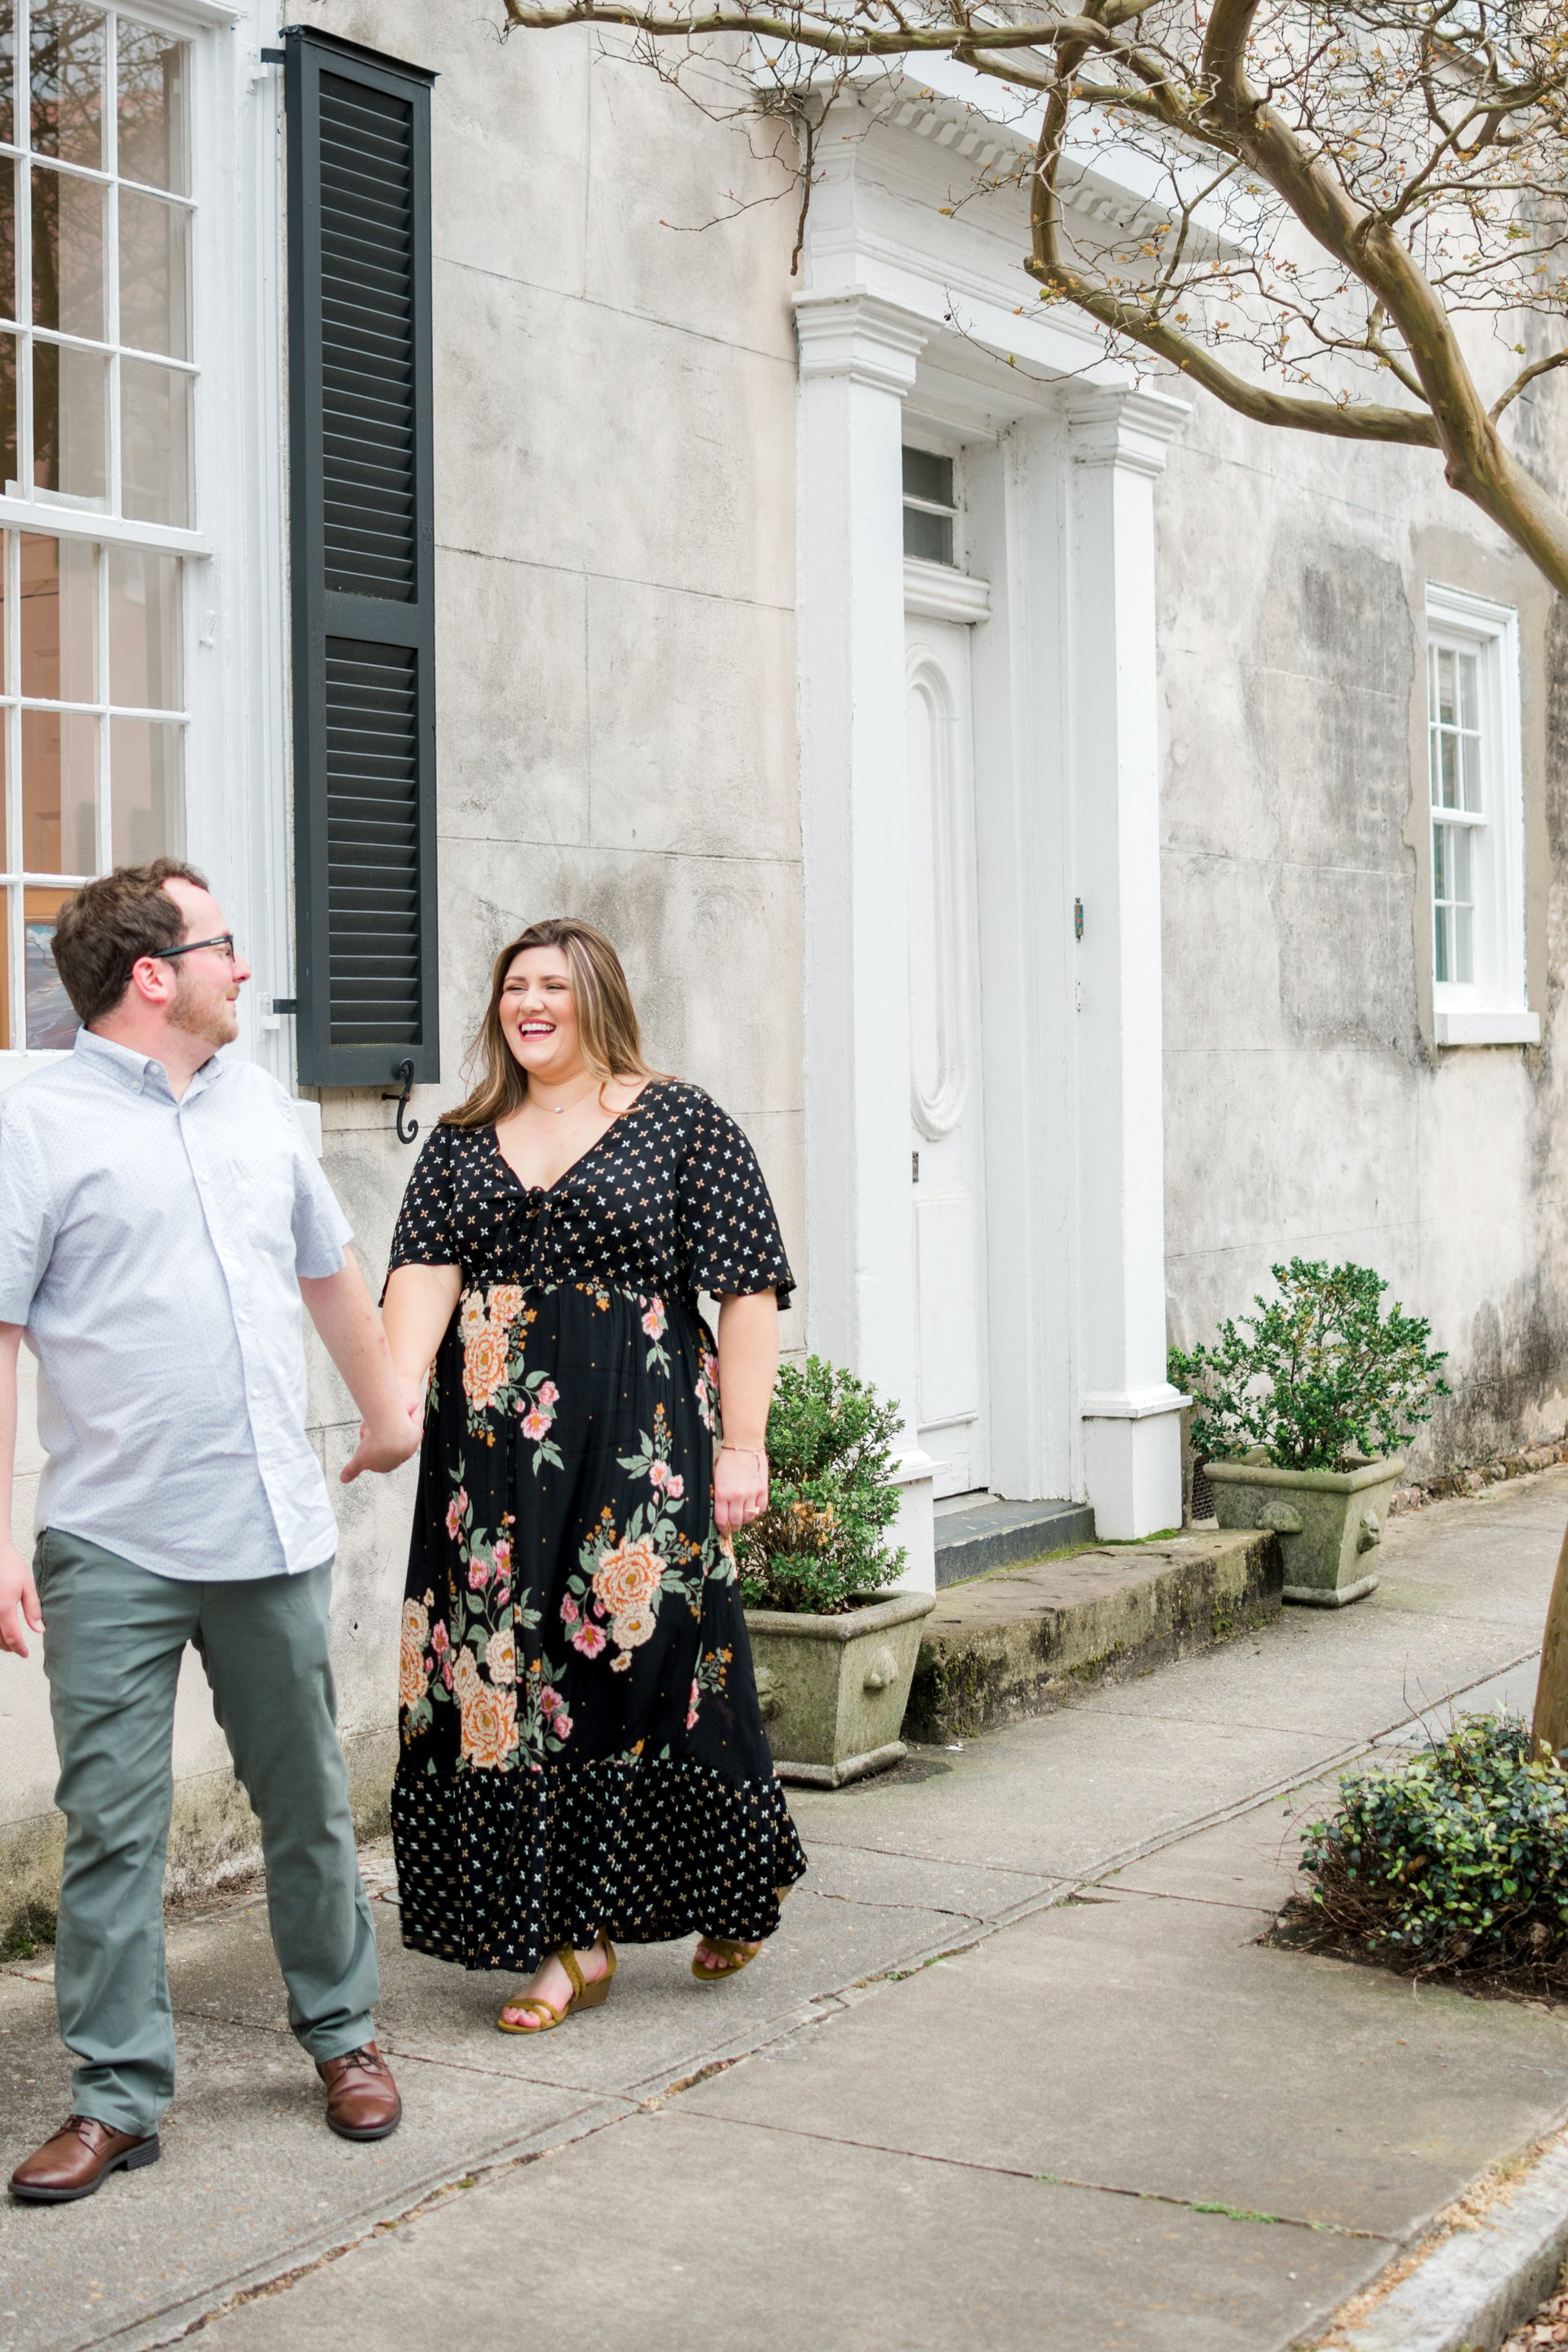 Charleston-USA-travel-story-Flytographer-17